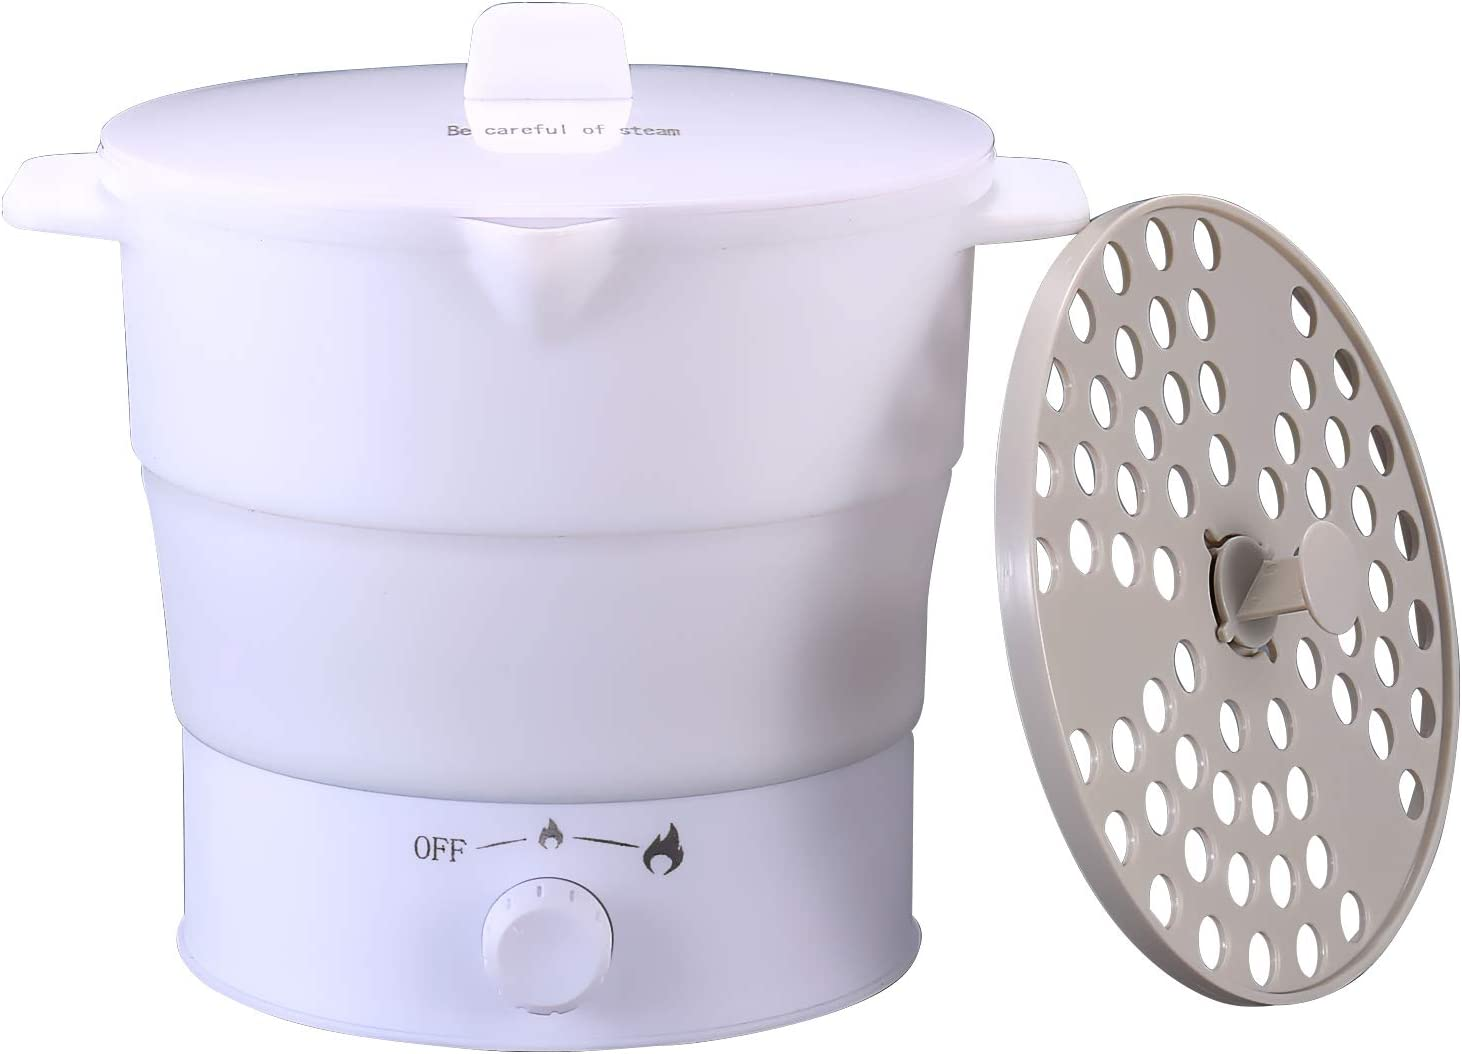 Portable Foldable Mini Electric Hot Pot Cooker, 1.2L Travel Heating Kettle, Food Grade Silicone Cookware Water Steamer, 2 Heating Speed Adjustable 110V / 800W Boiling in 7~10 Minutes, 23 Oz Weight